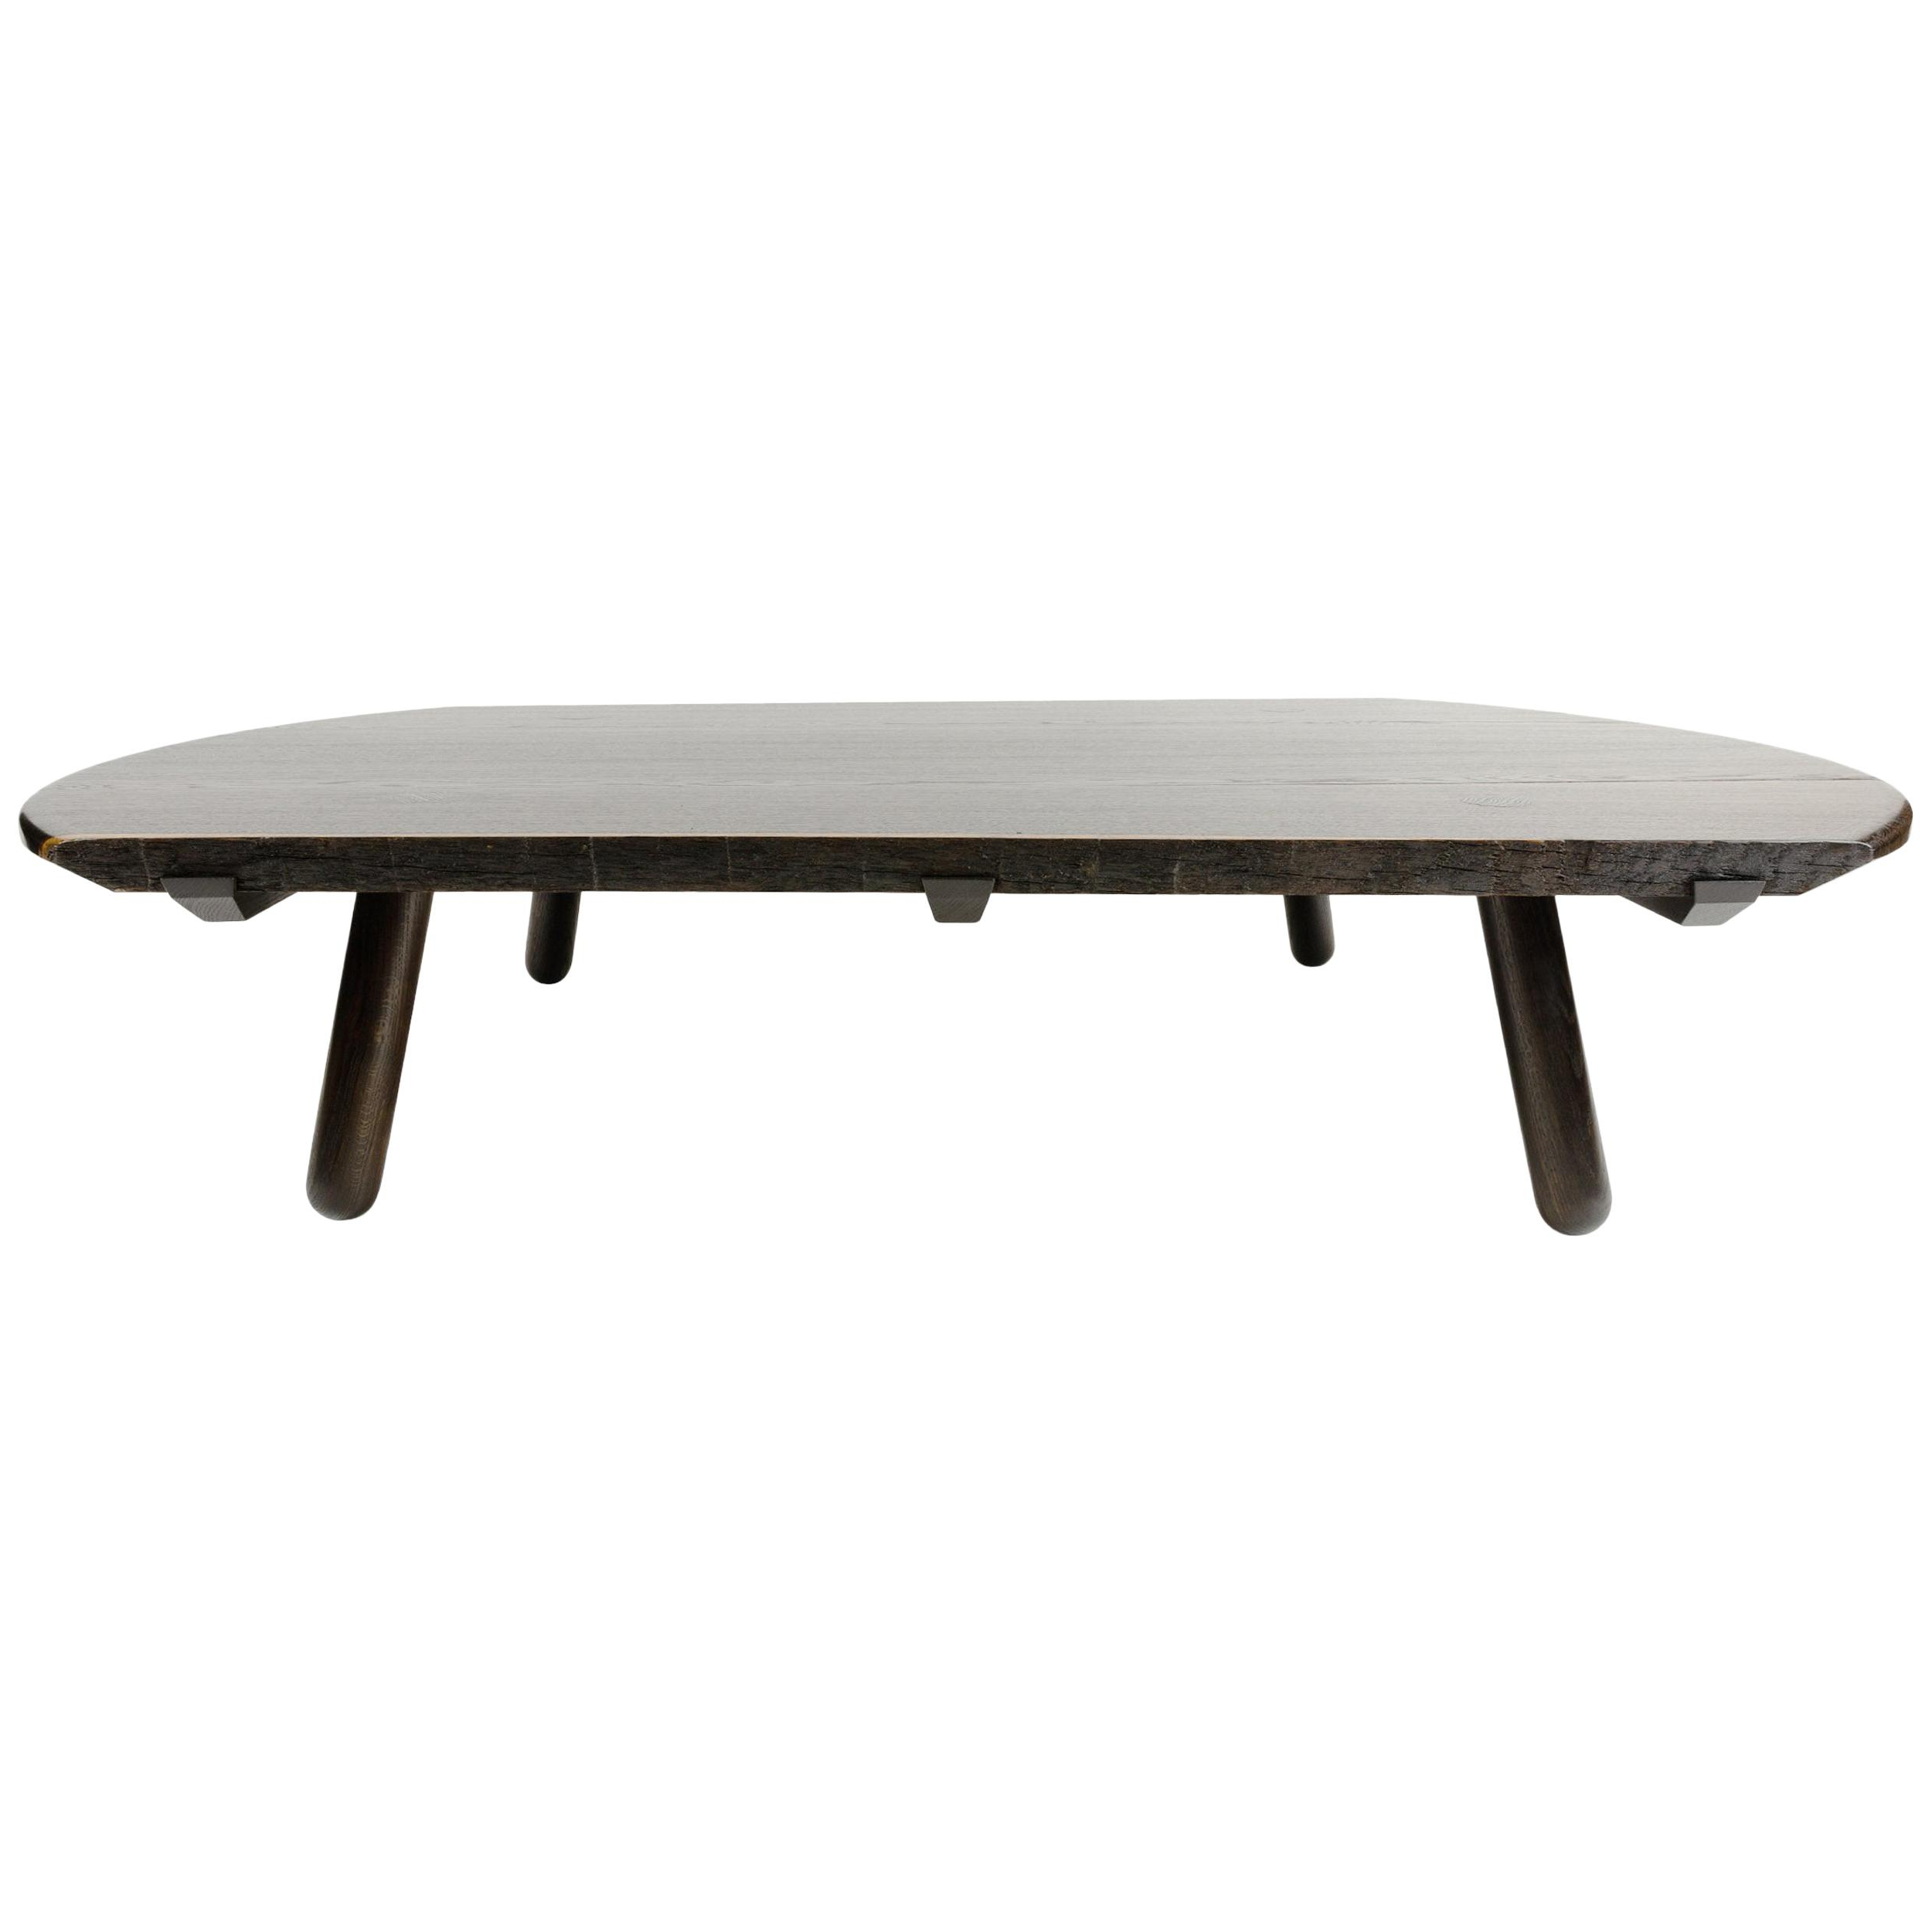 Widely Used Sawyer Industrial Reclaimed Rectangular Cocktail Tables Within American Craftsman Coffee And Cocktail Tables – 51 For Sale (View 14 of 20)